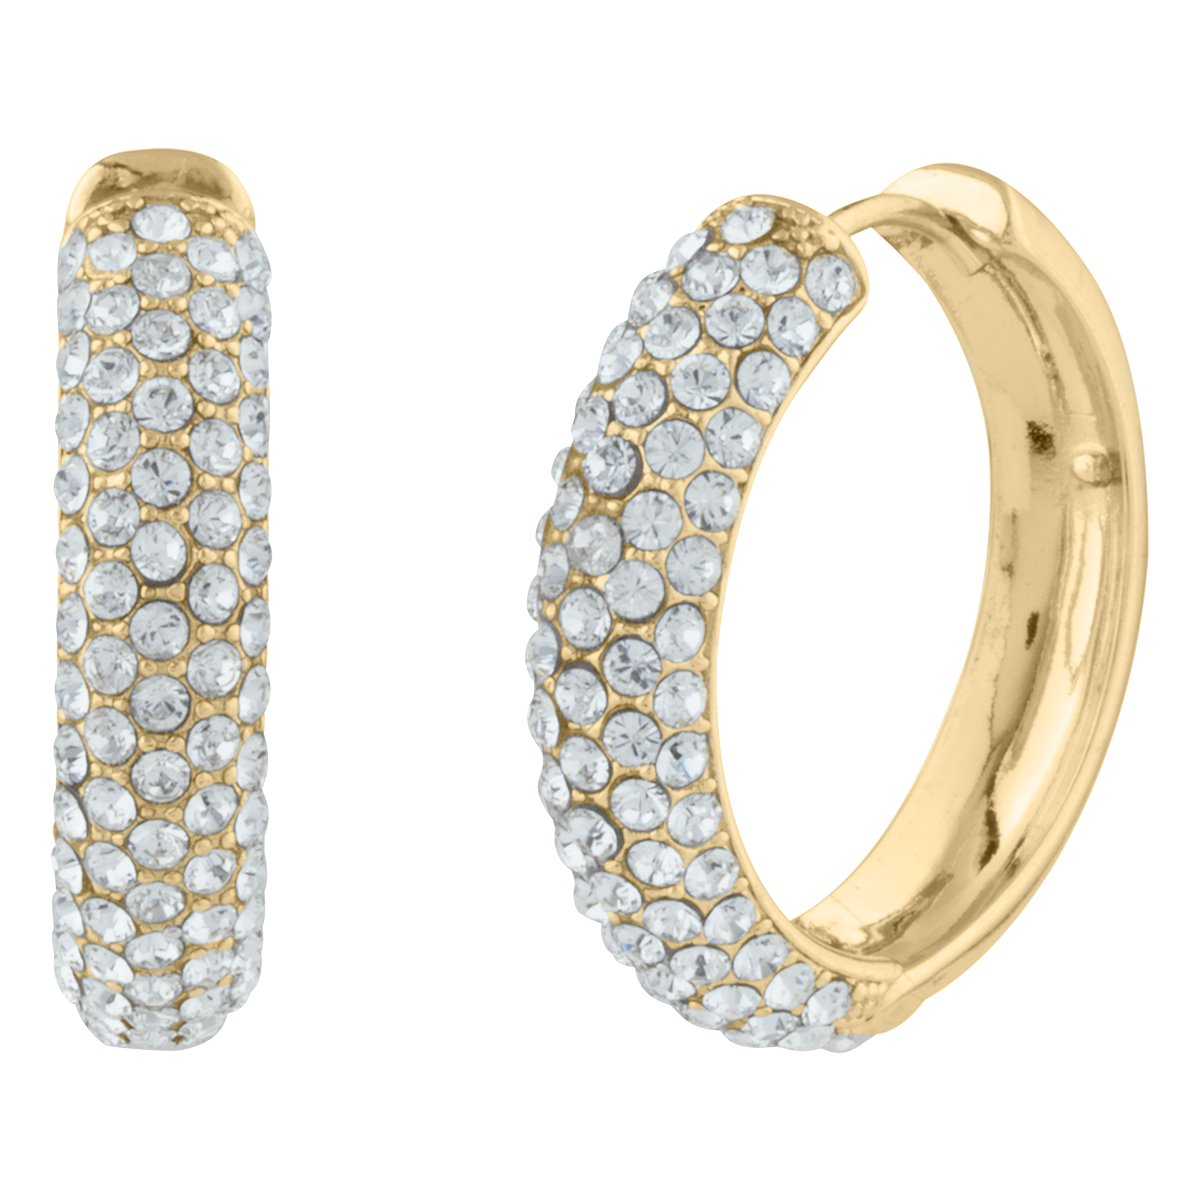 KELLY PAVE HOOP EARRING GOLD CRYSTAL